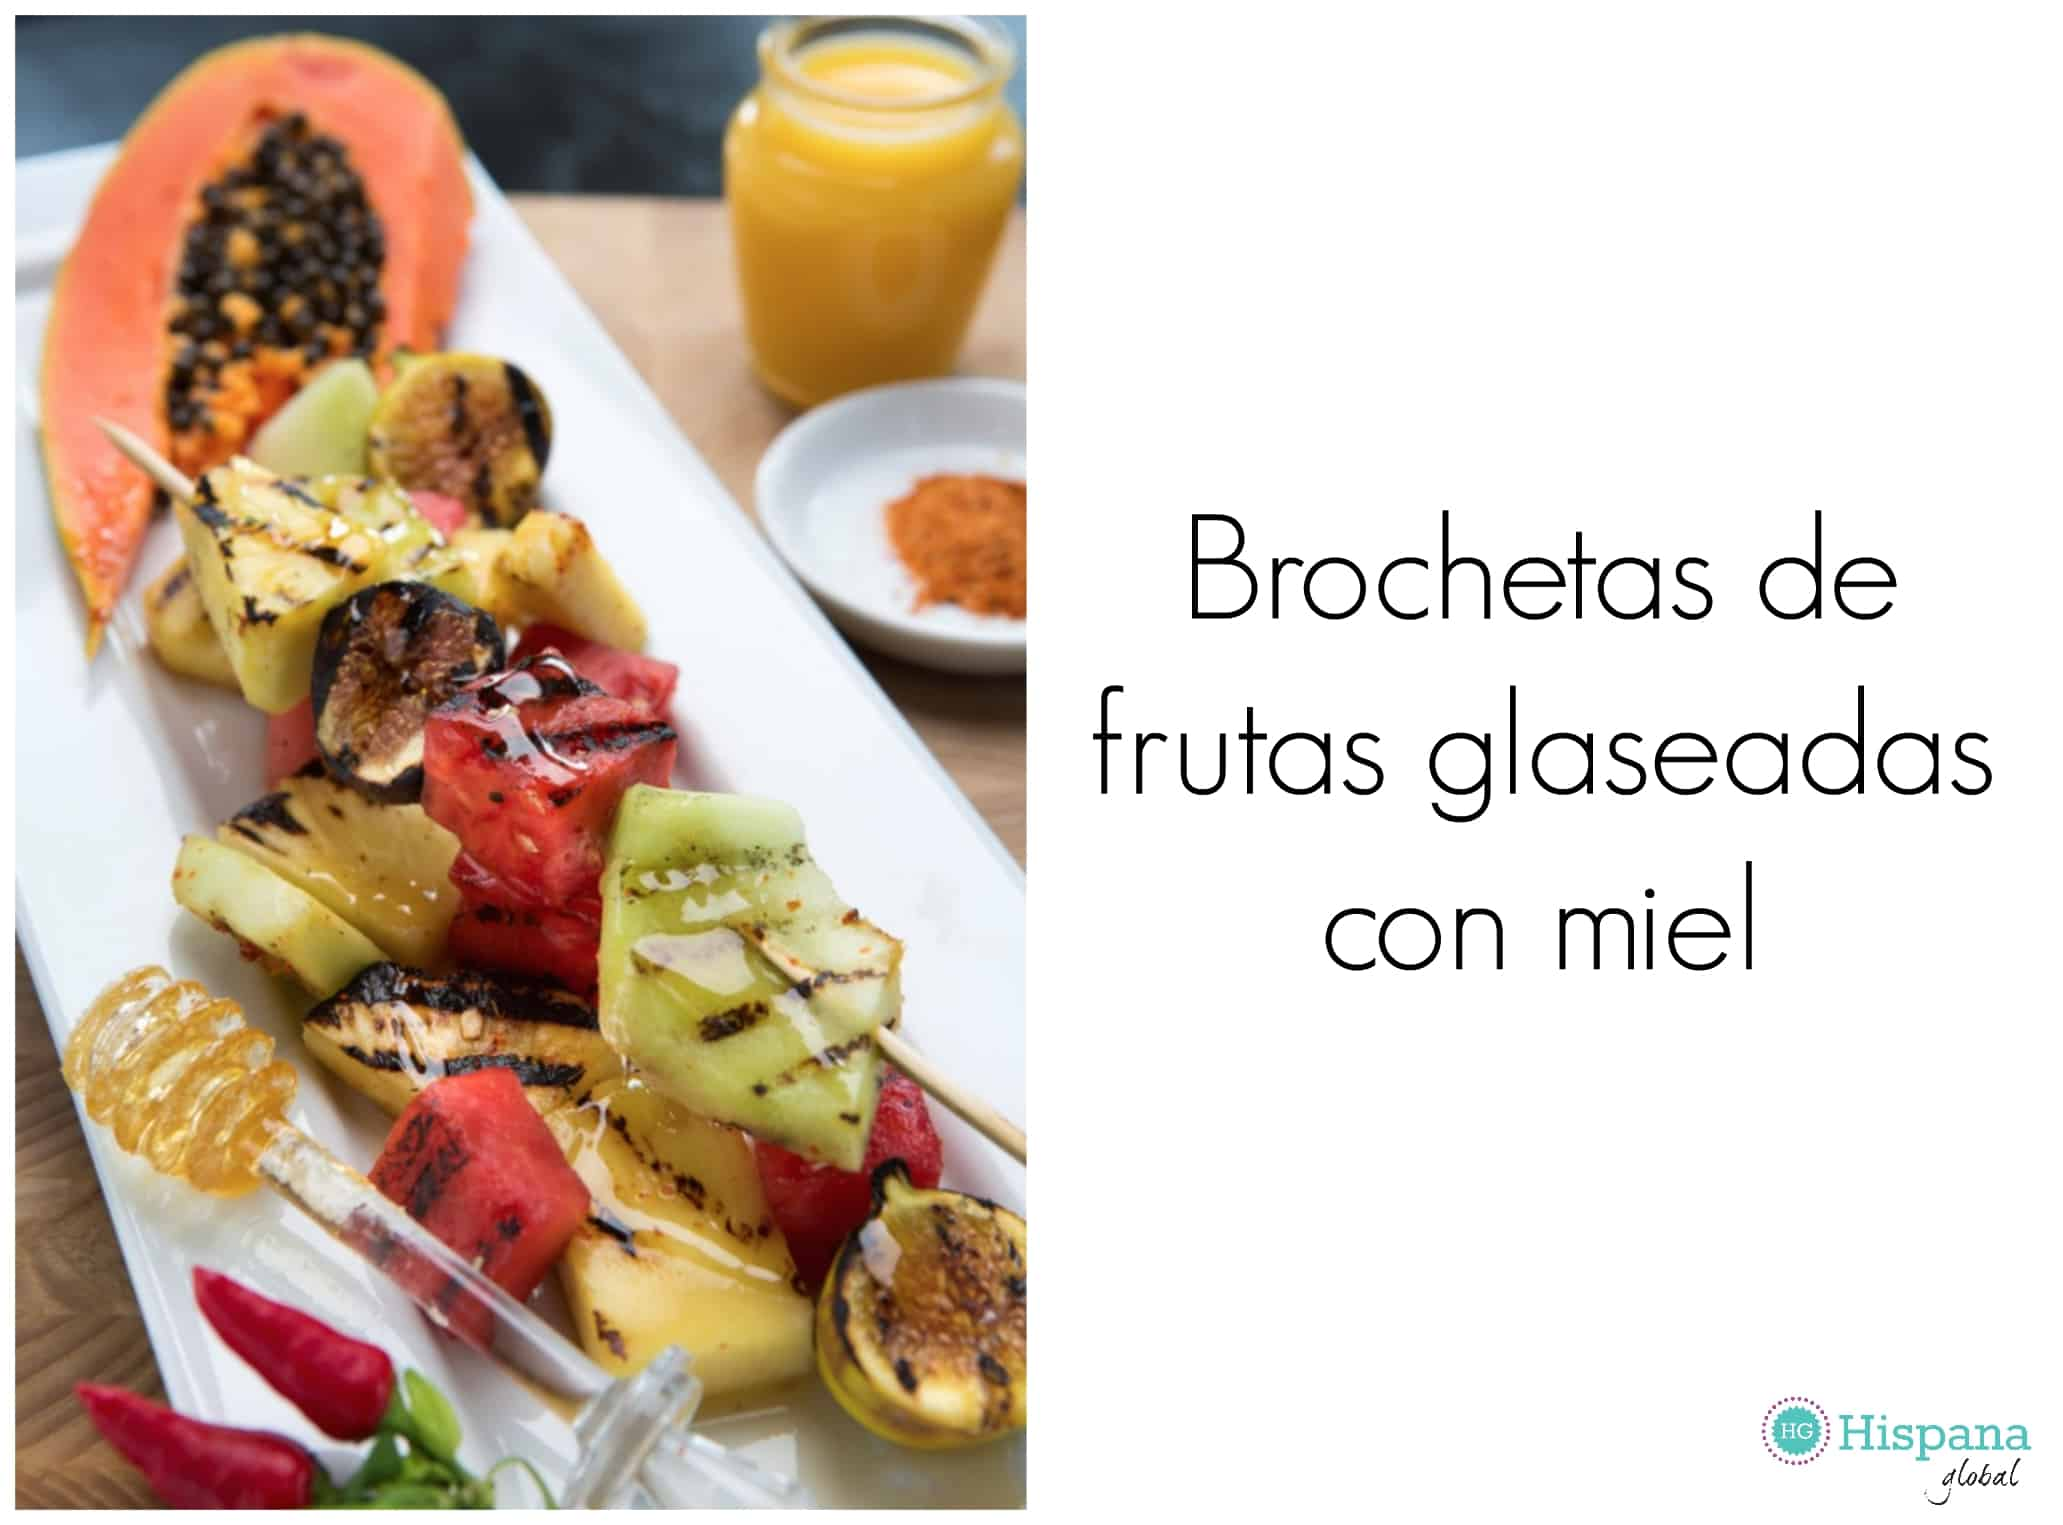 Receta de brochetas de frutas glaseadas con miel  Hispana Global